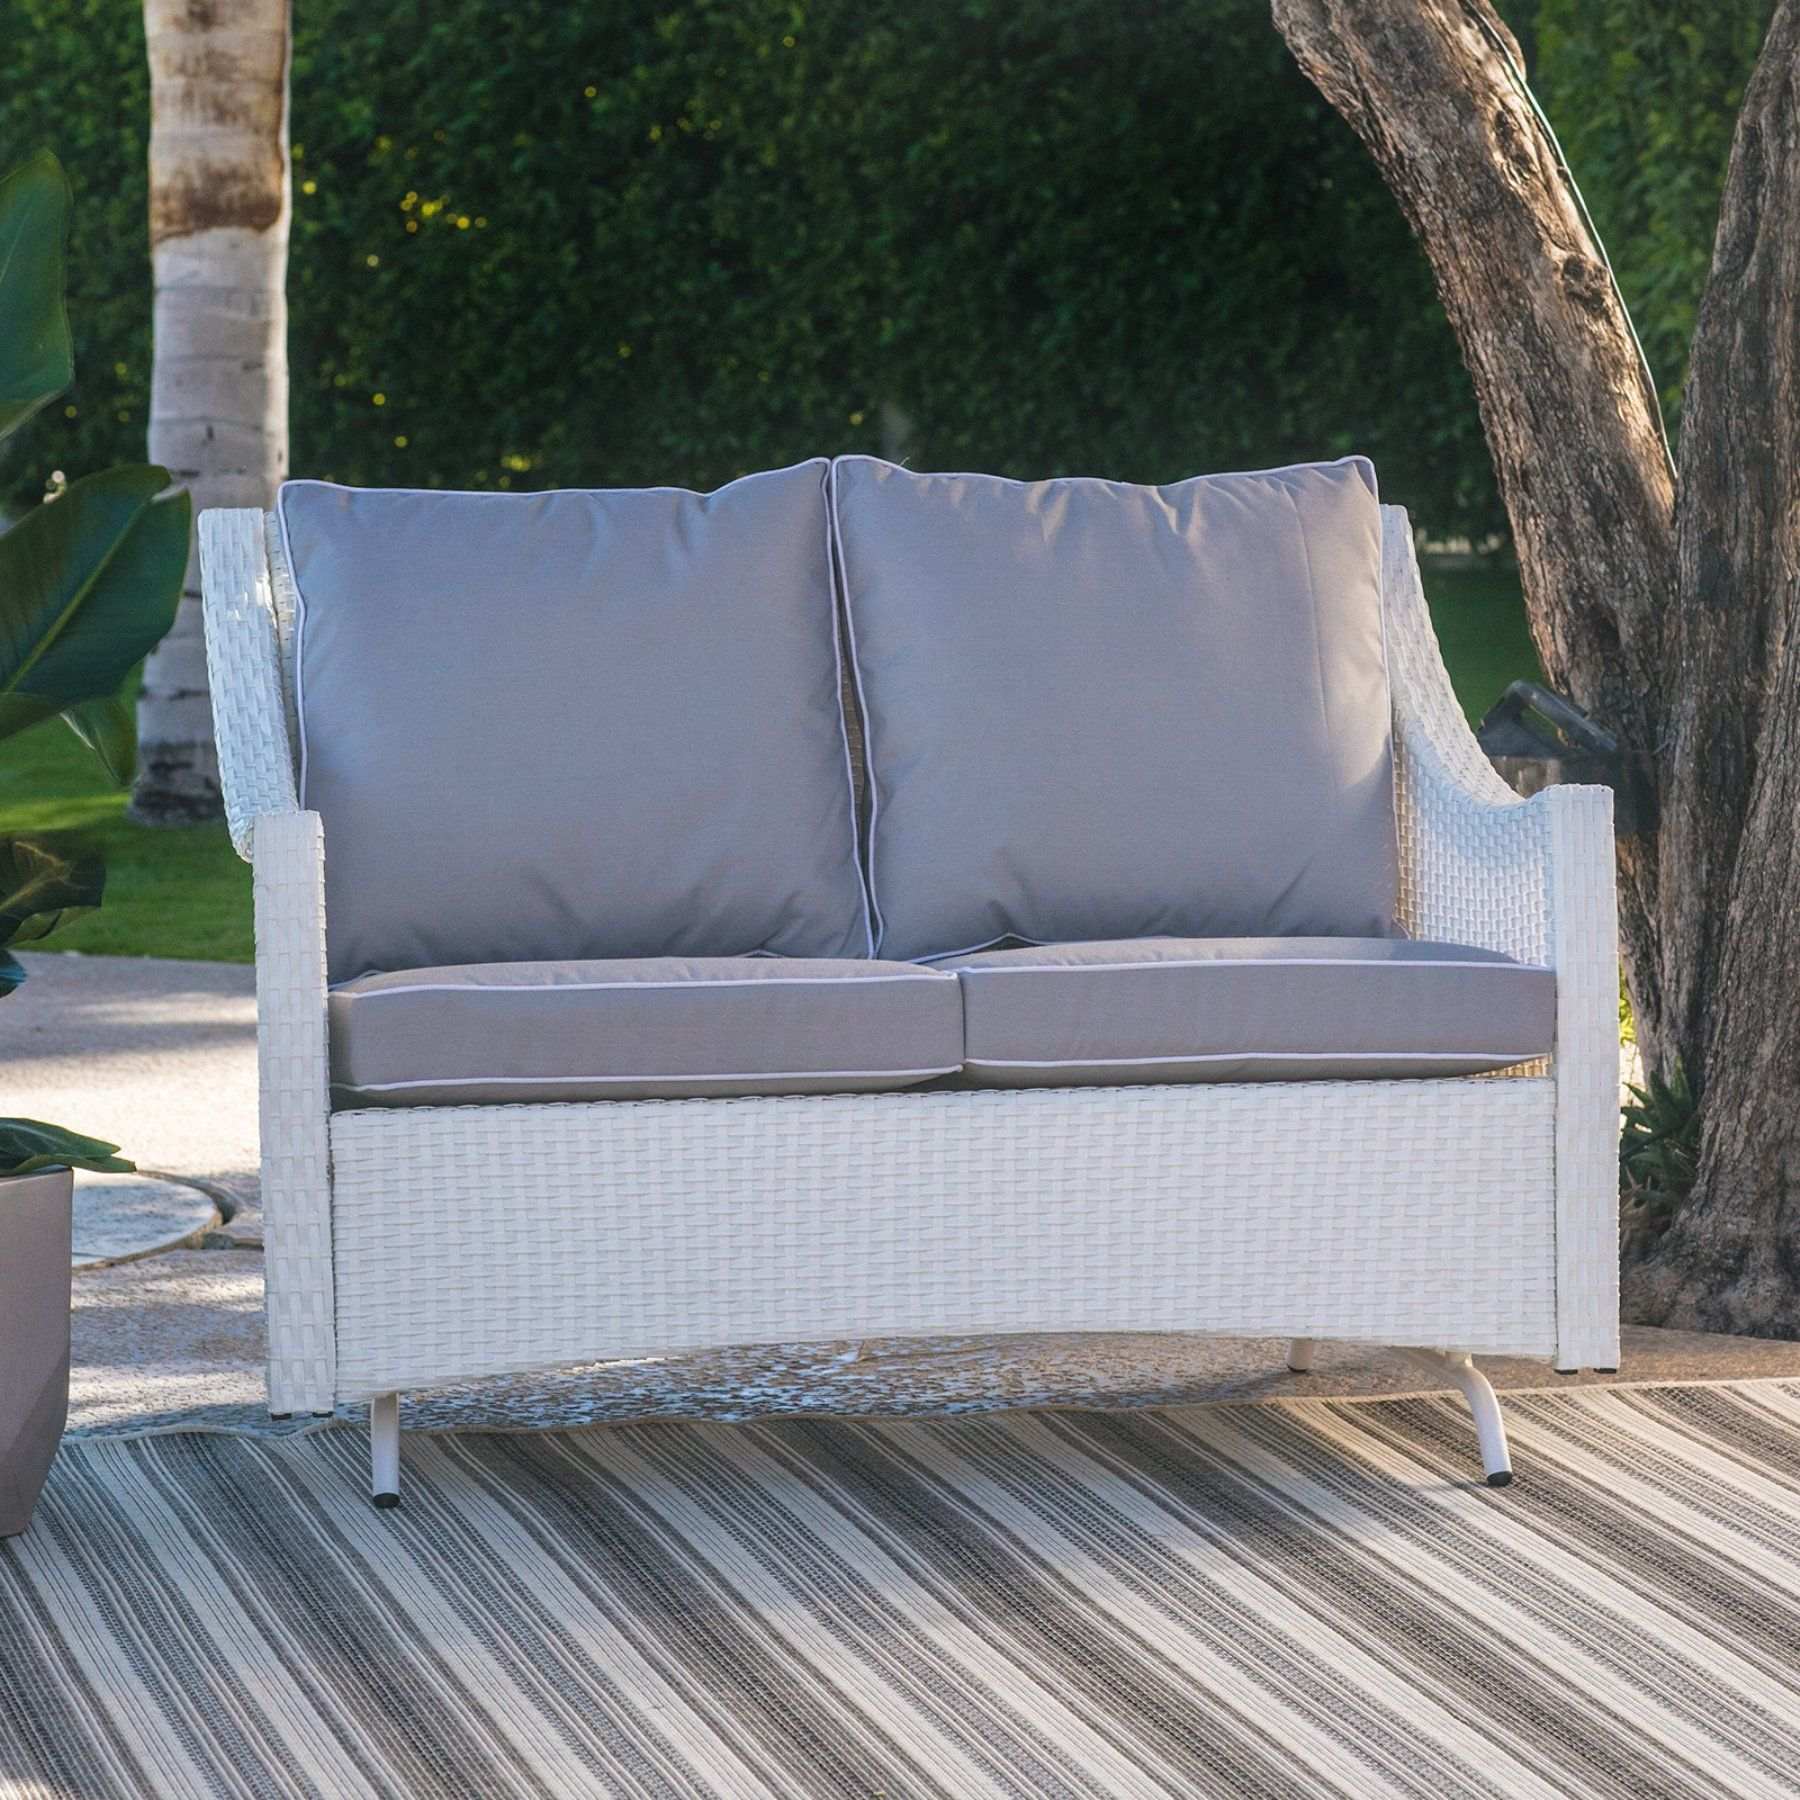 Outdoor Belham Living Lindau All Weather Wicker Patio Loveseat Glider With  Cushion   White   LV